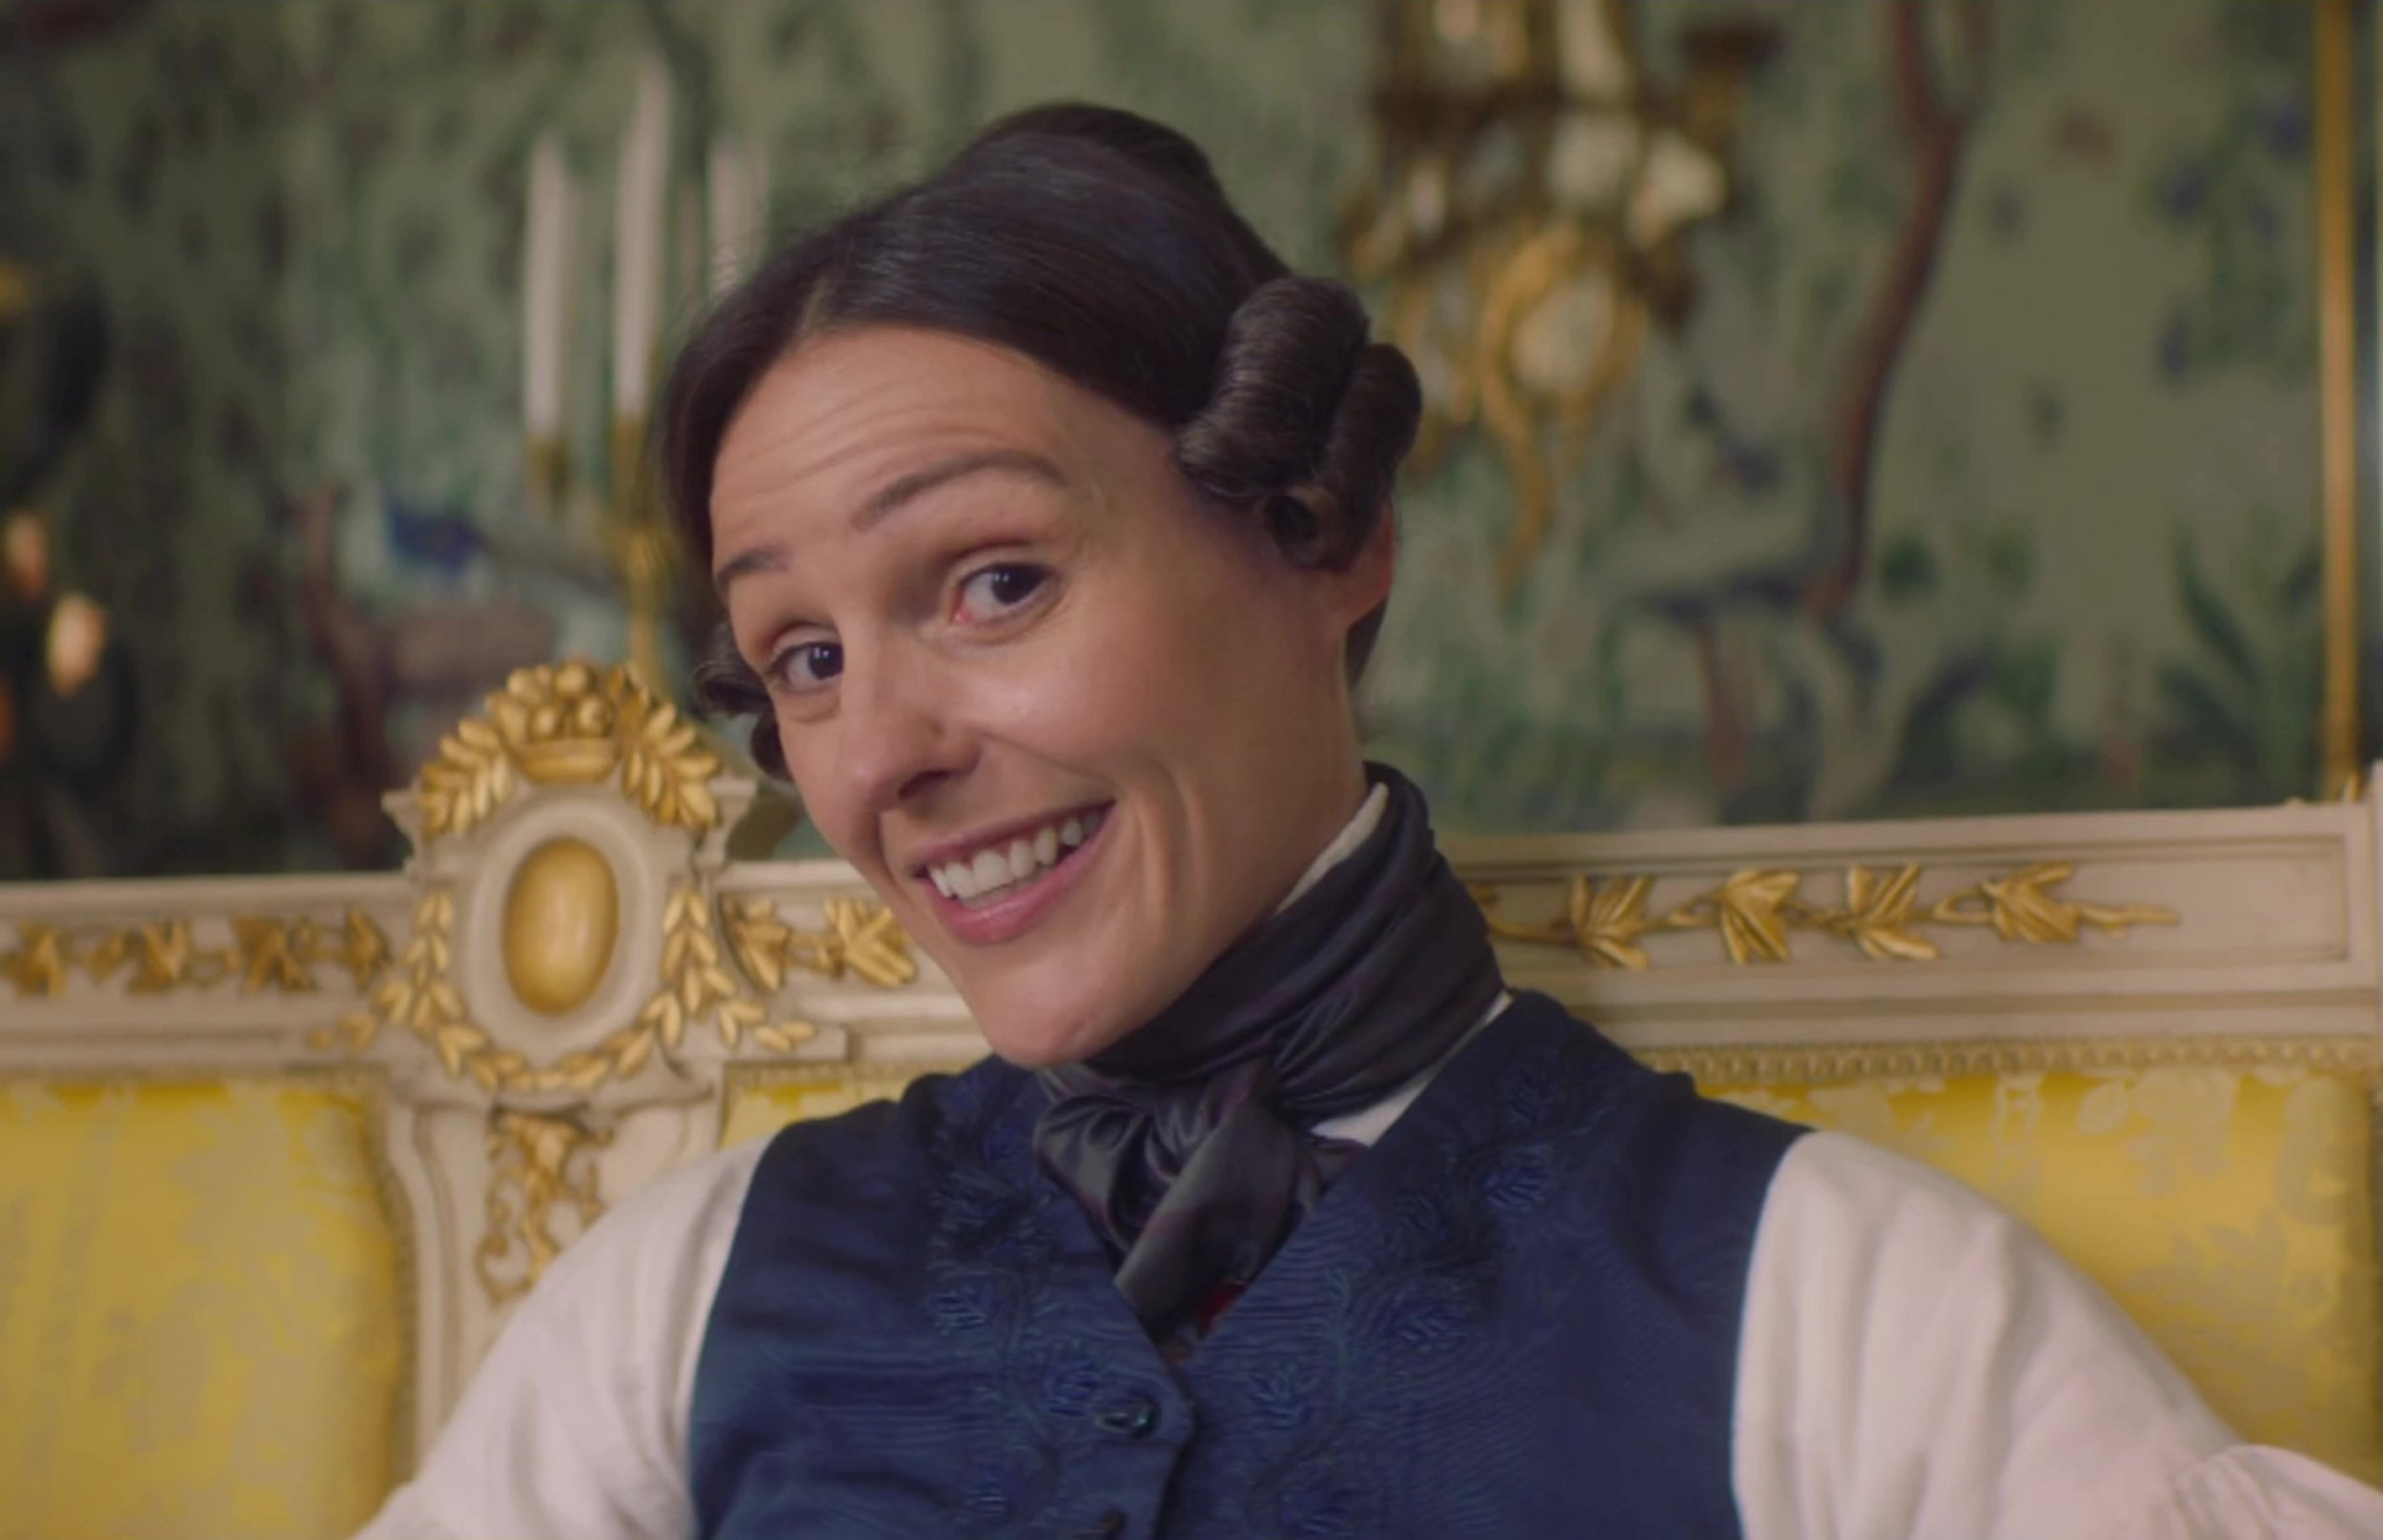 BBC One has now released the trailer for Sally Wainwright?s forthcoming eight-part drama Gentleman Jack, starring Suranne Jones. Set in 1832 in West Yorkshire, Gentleman Jack is based on the diaries of Anne Lister (Suranne Jones), a landowner and industrialist who is often described as 'the first modern lesbian'. After years of exotic travel, Anne returns to Halifax, determined to transform the fate of her family and their faded ancestral home Shibden Hall ? and to find herself a wife. Every part of Anne?s story is based in historical fact, recorded in the four million words of her diaries that contain the most intimate details of her life, once hidden in a secret code that is now broken. Gentleman Jack is a remarkable and unlikely love story set in the complex, changing world of Halifax - the cradle of the industrial revolution. The drama will explore Anne Lister?s relationships at home with her family, her servants, her tenants and her industrial rivals, who will use any dirty tricks they can to bring her down. At its heart is her relationship with her would-be wife, the wealthy heiress Ann Walker (Sophie Rundle). It has all the warmth, wit, humour and complexity that audiences have come to associate with Sally Wainwright?s writing.